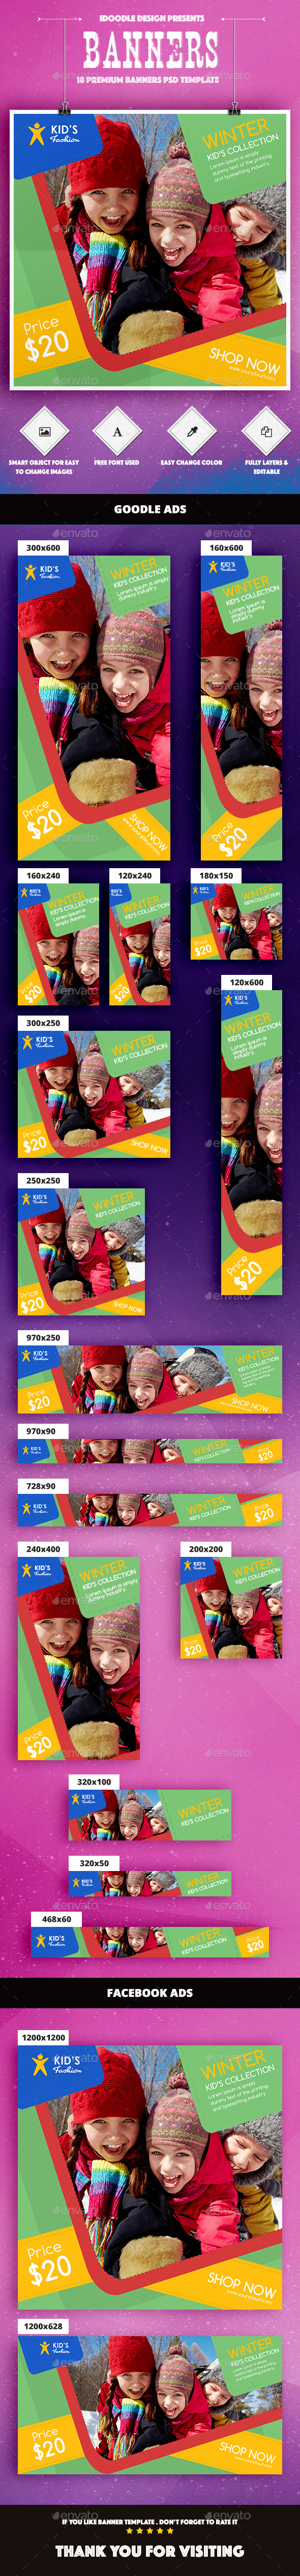 Kids Fashion Banners Ad - Banners & Ads Web Elements